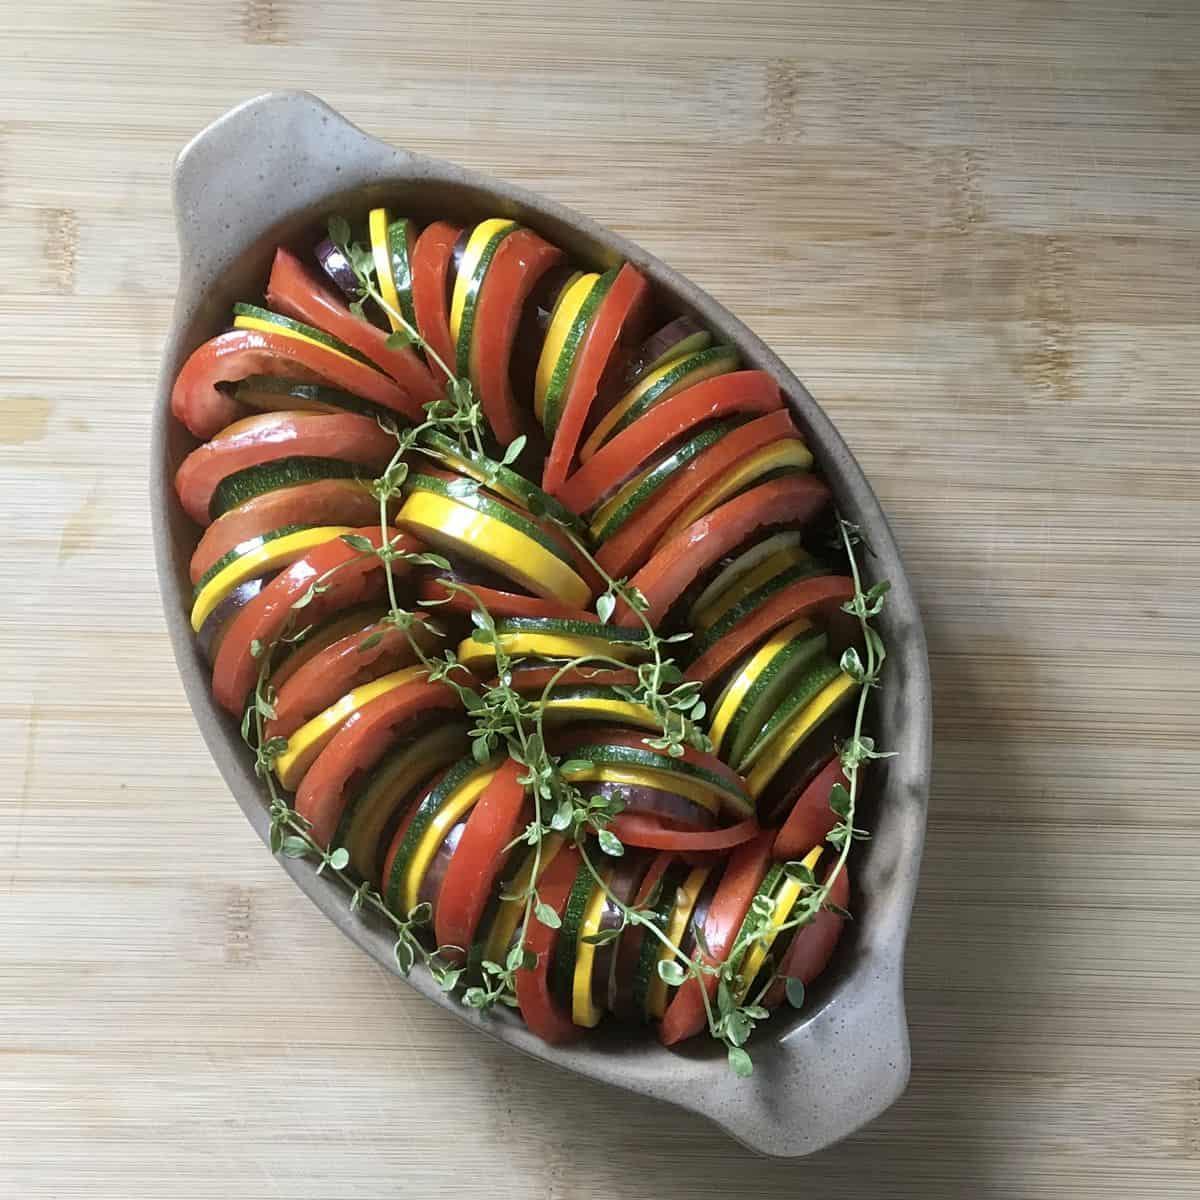 Sliced tomatoes, zucchini and eggplant in a casserole dish.